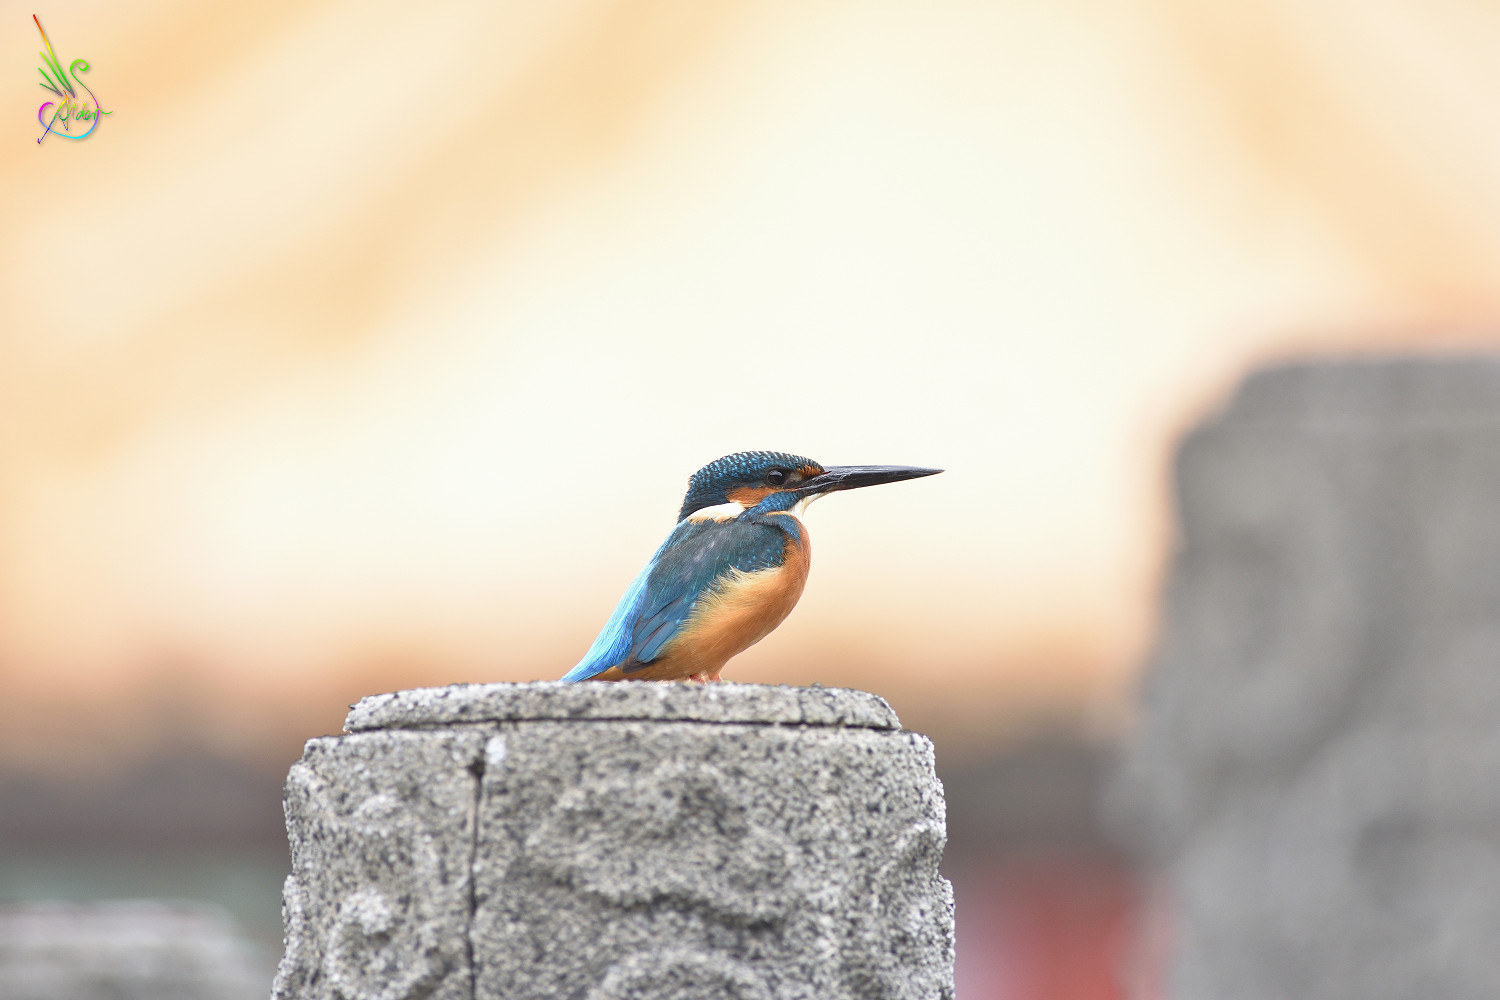 Common_Kingfisher_7643